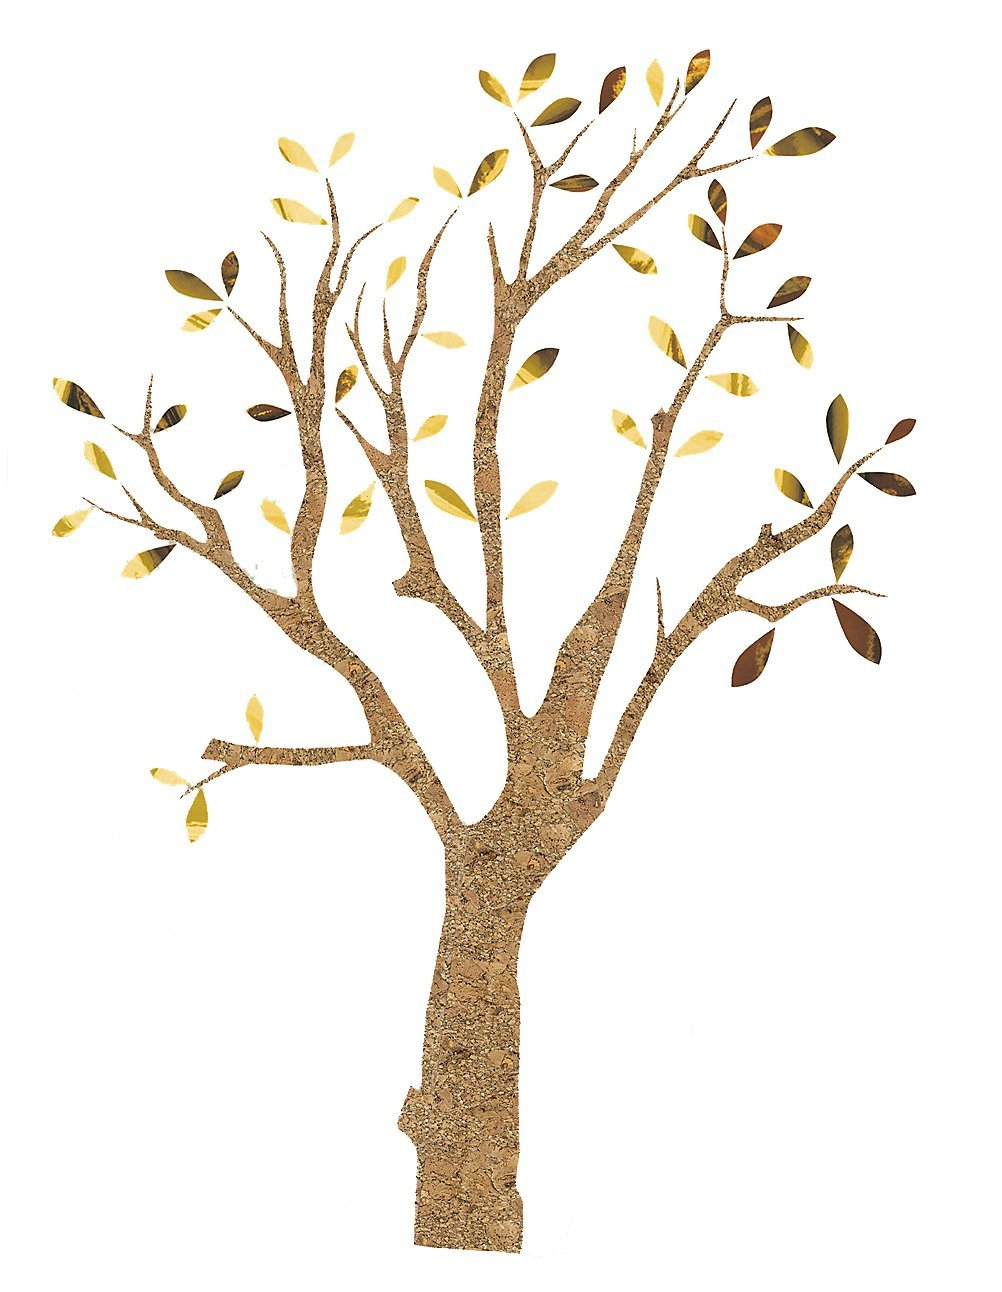 Crearreda CR-81582 Cork and Metallic Tree Wall Decal